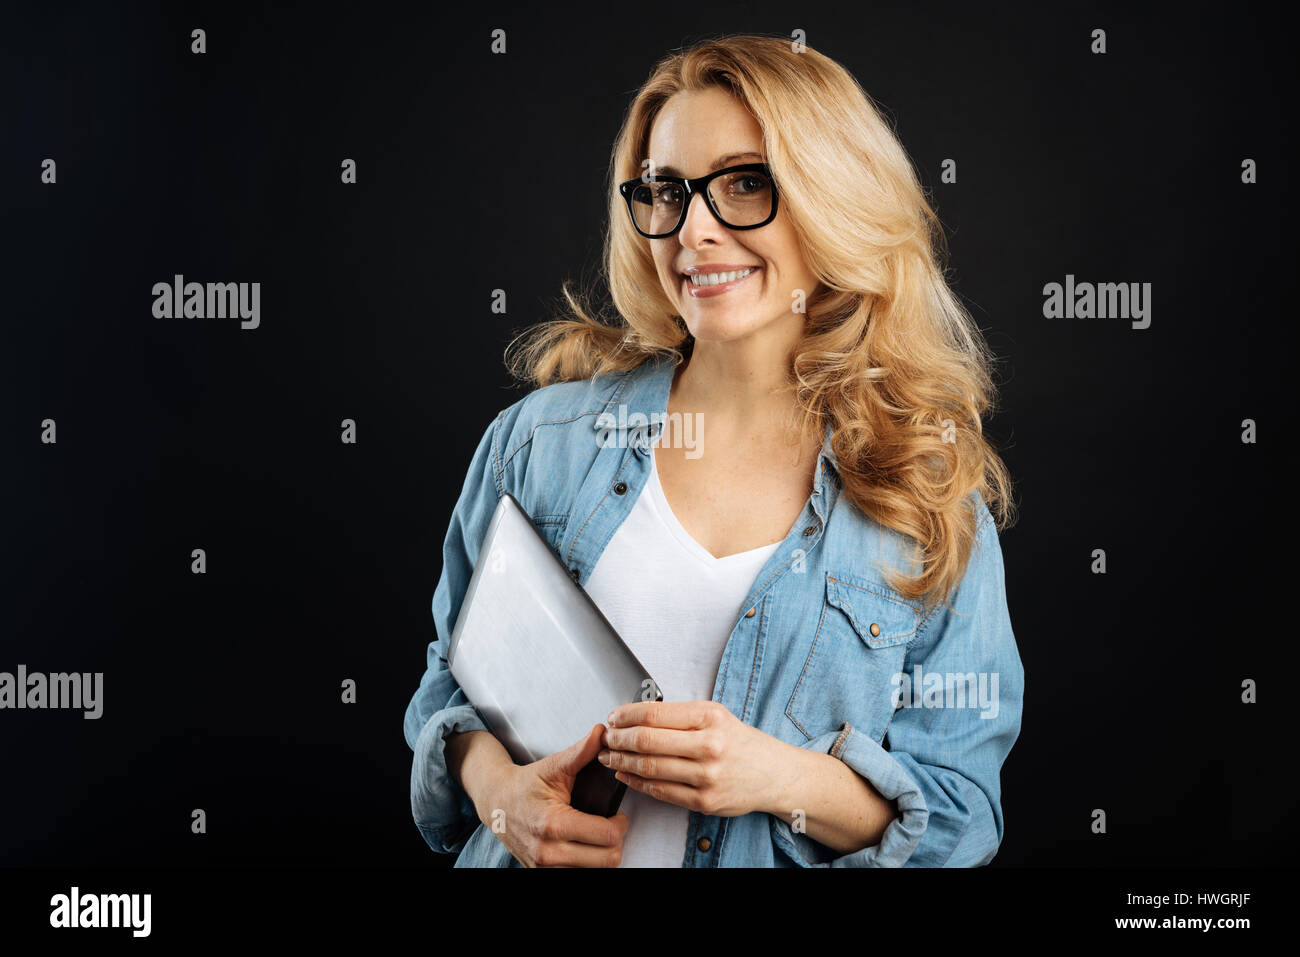 Delighted blonde keeping device in right hand - Stock Image